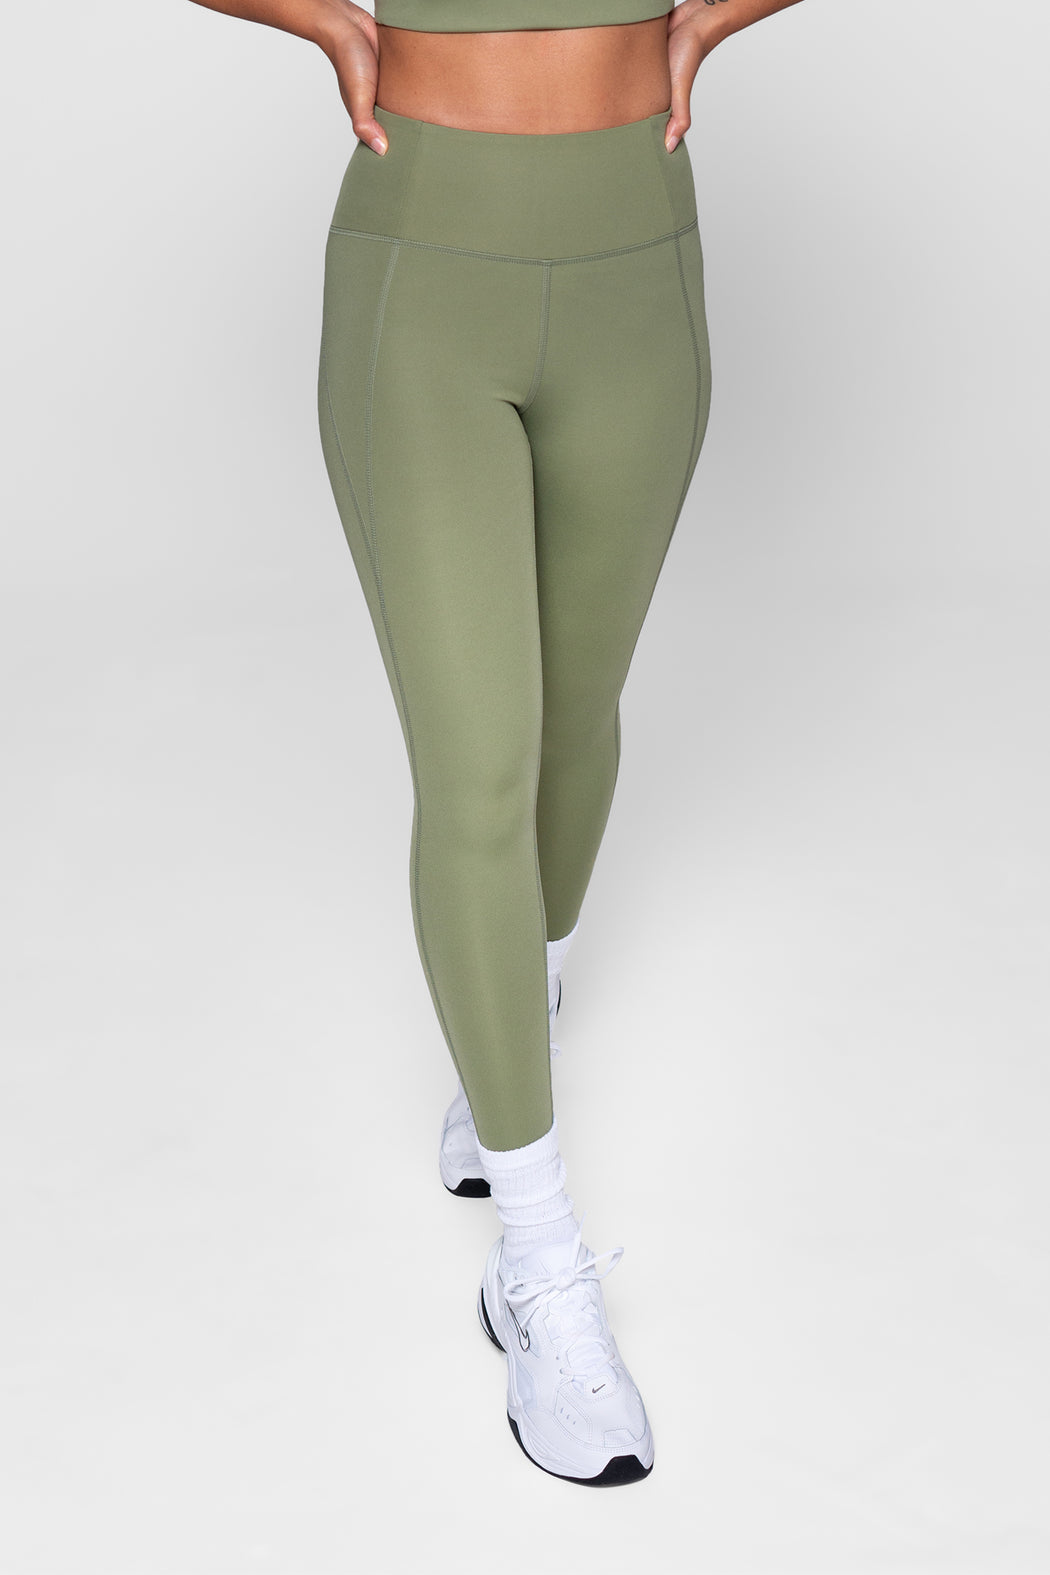 Girlfriend Collective Compressive High-Rise Capri Legging Olive Green